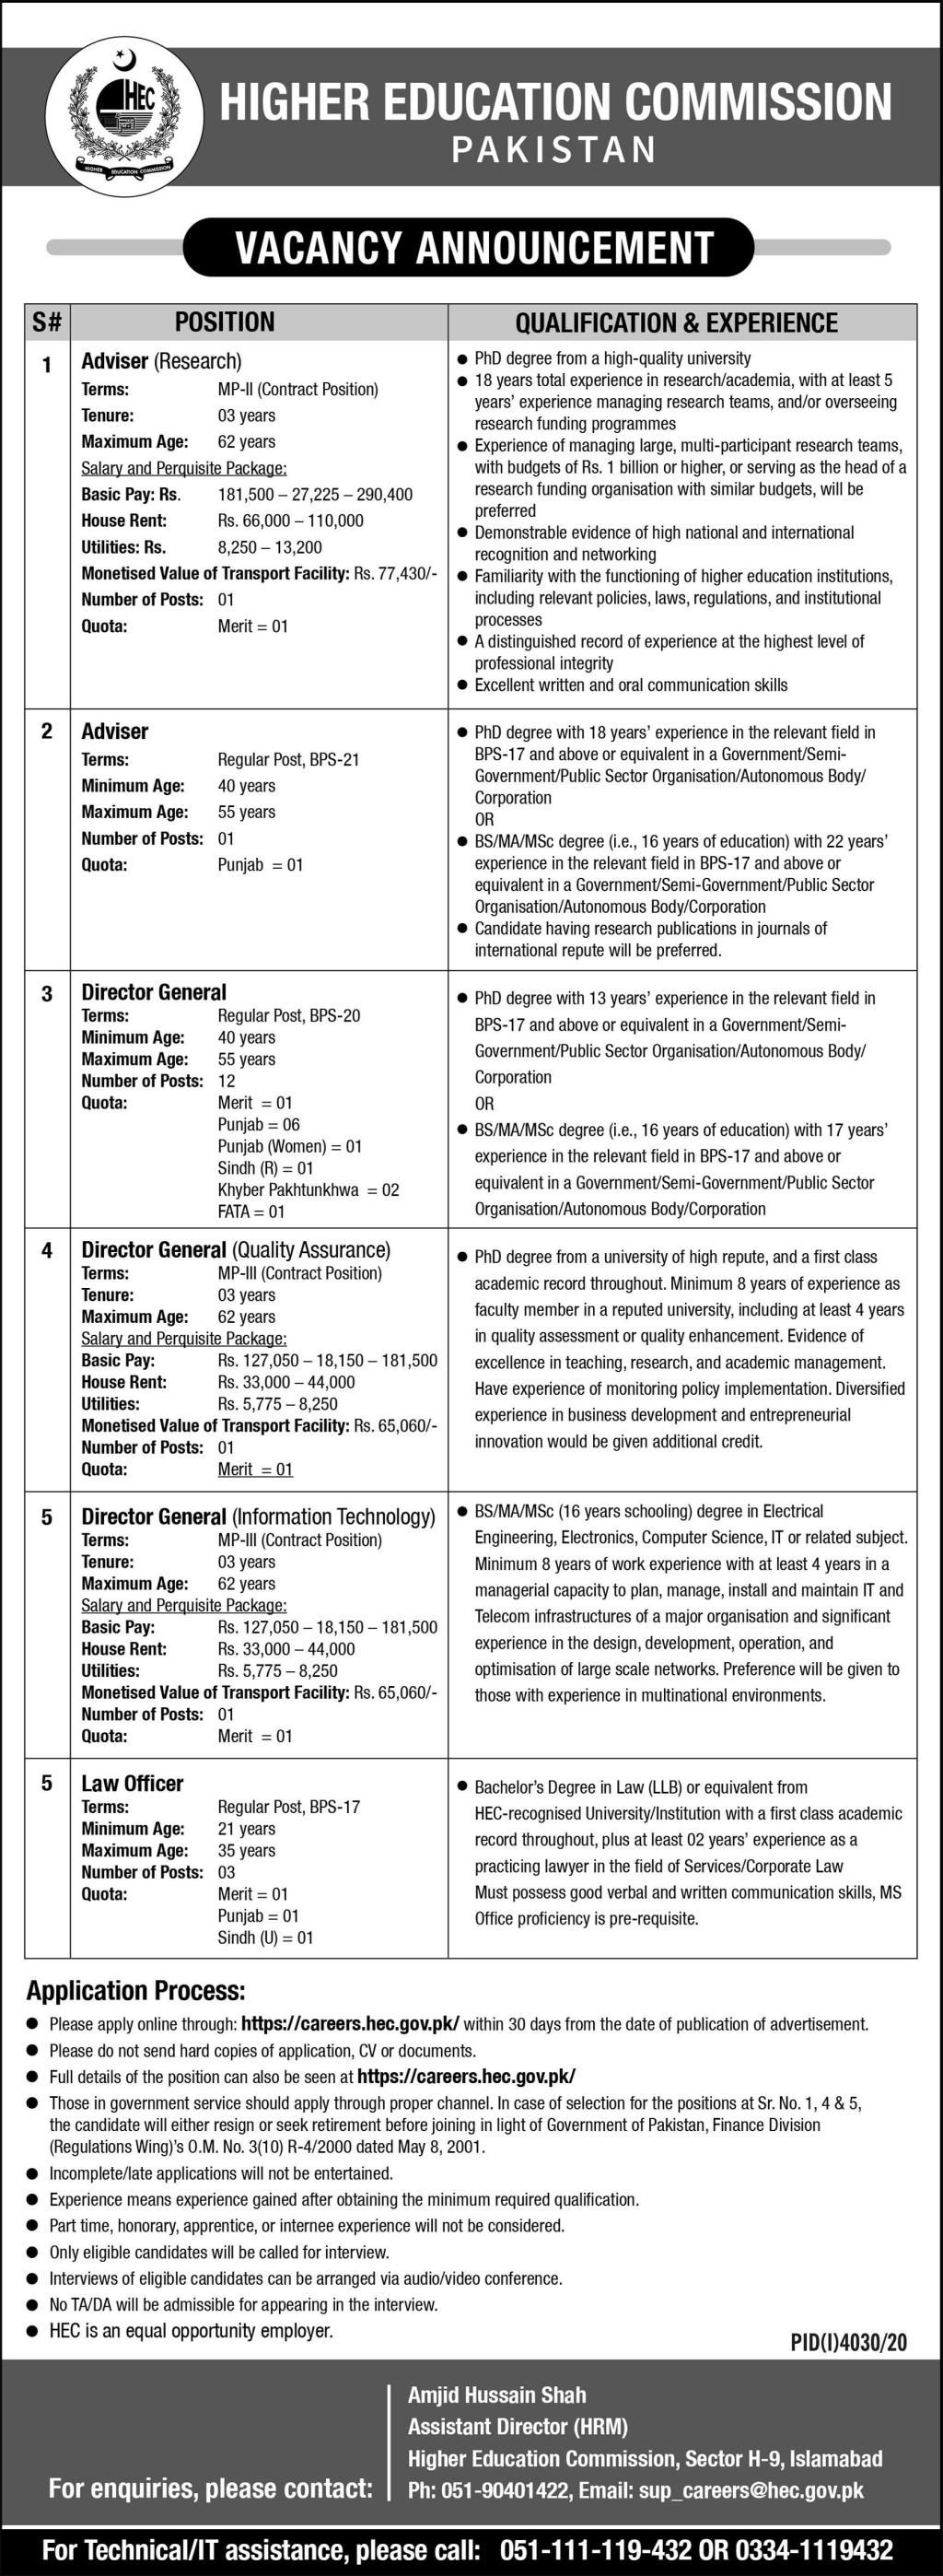 Higher Education Commission HEC Jobs 2021 For Research Advisor, Director General, Law Officer & more